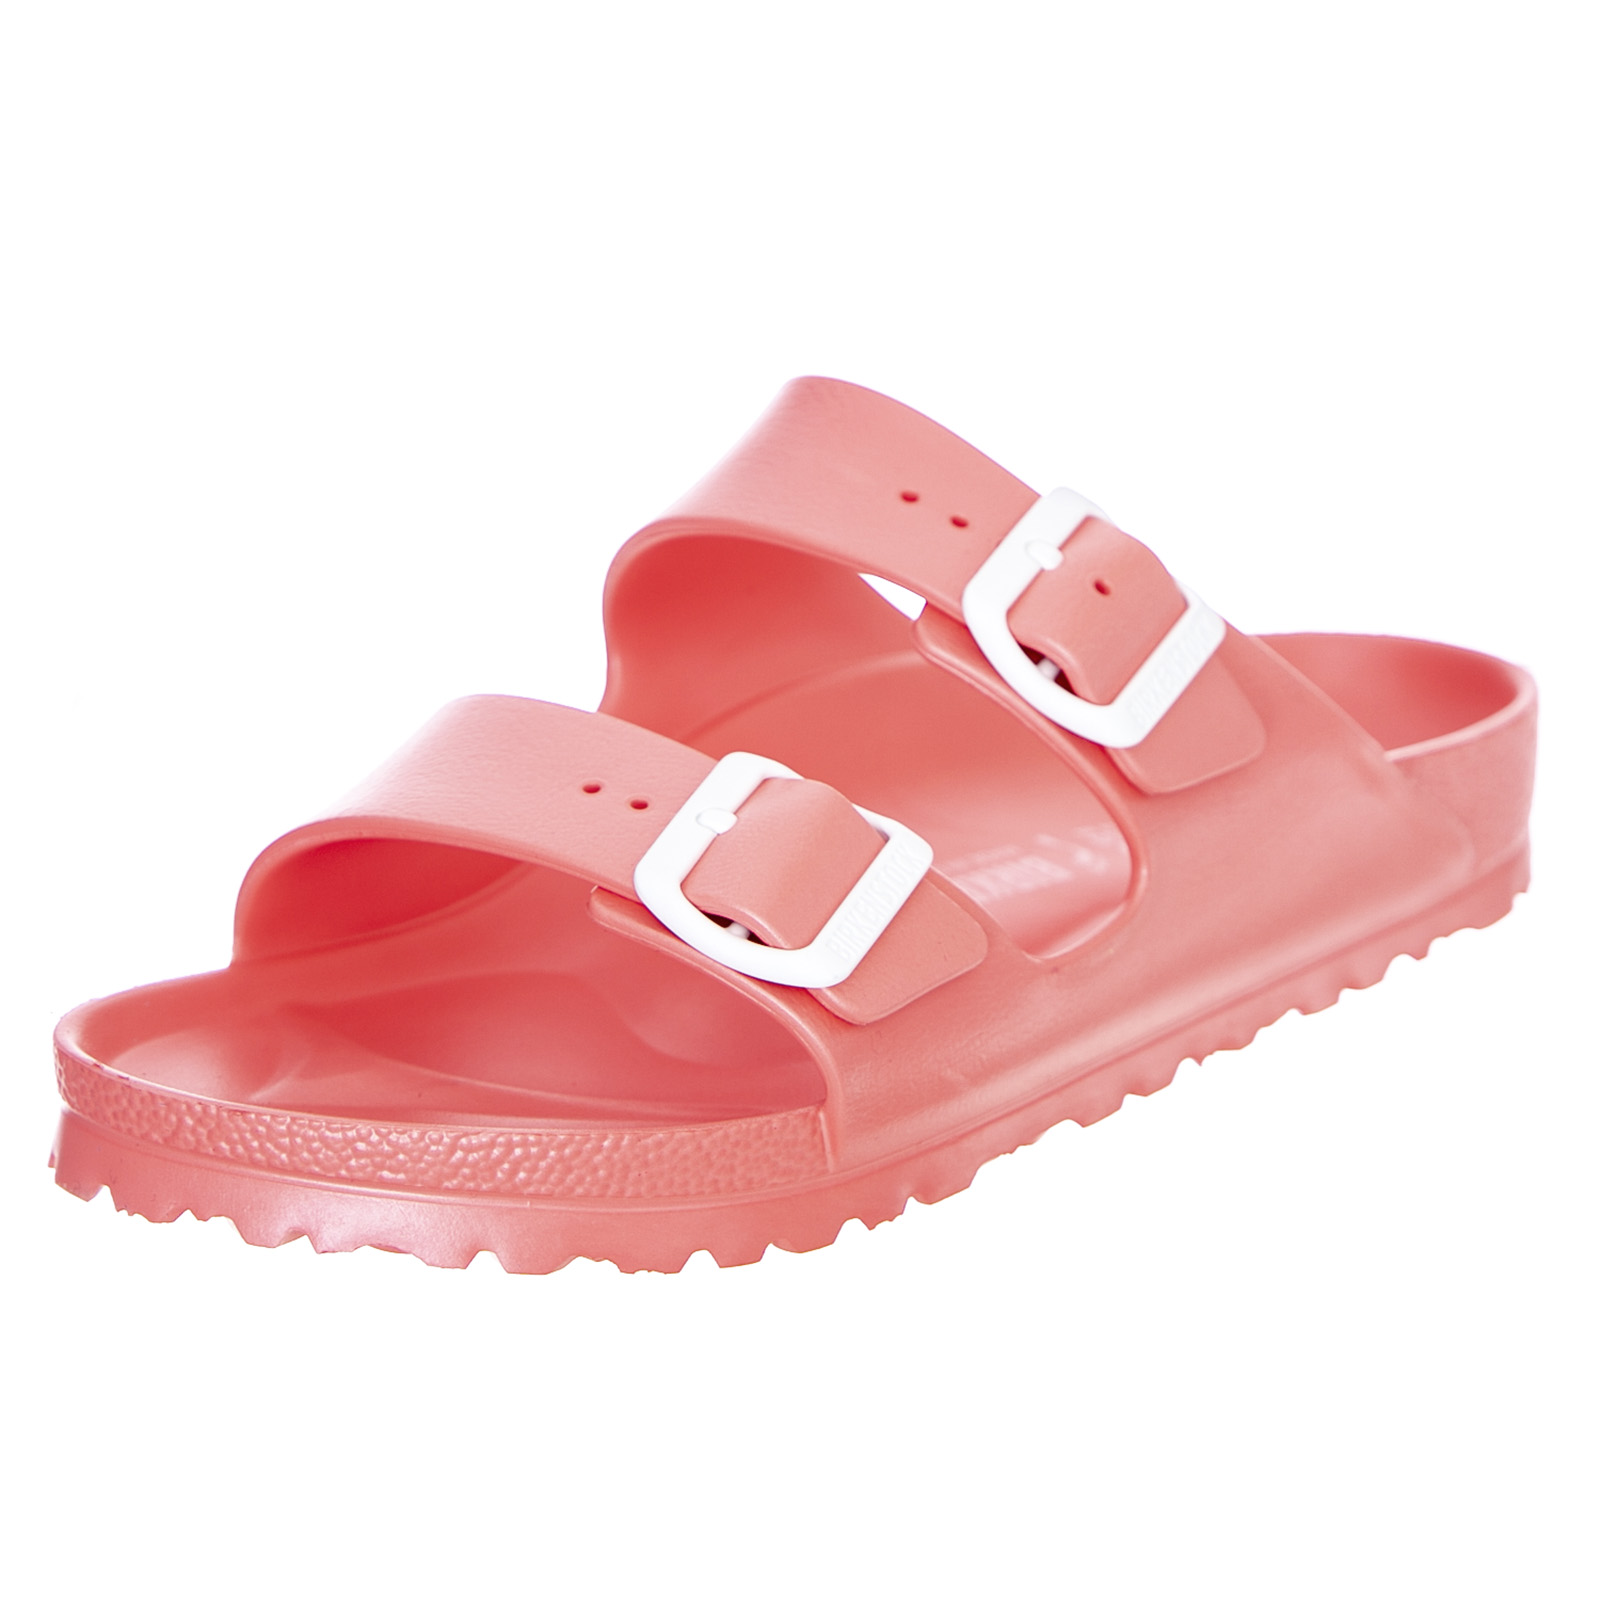 Details about Birkenstock Arizona Eva Soft Coral Ladies Sandals Fitting Narrow Pink